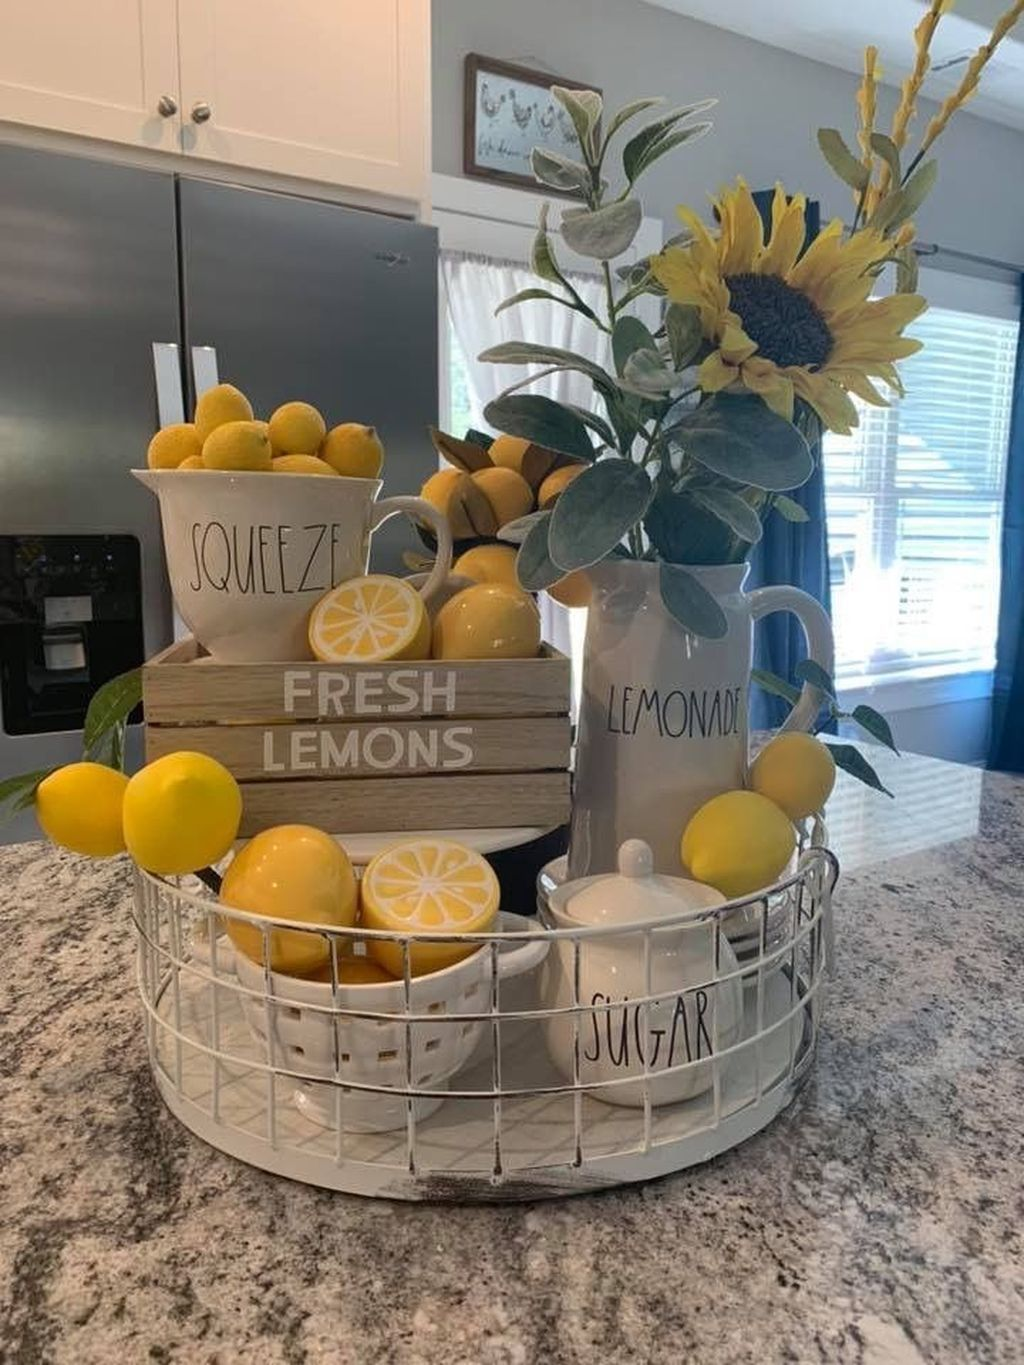 8 Popular Spring And Summer Kitchen Decor Ideas  Lemon kitchen